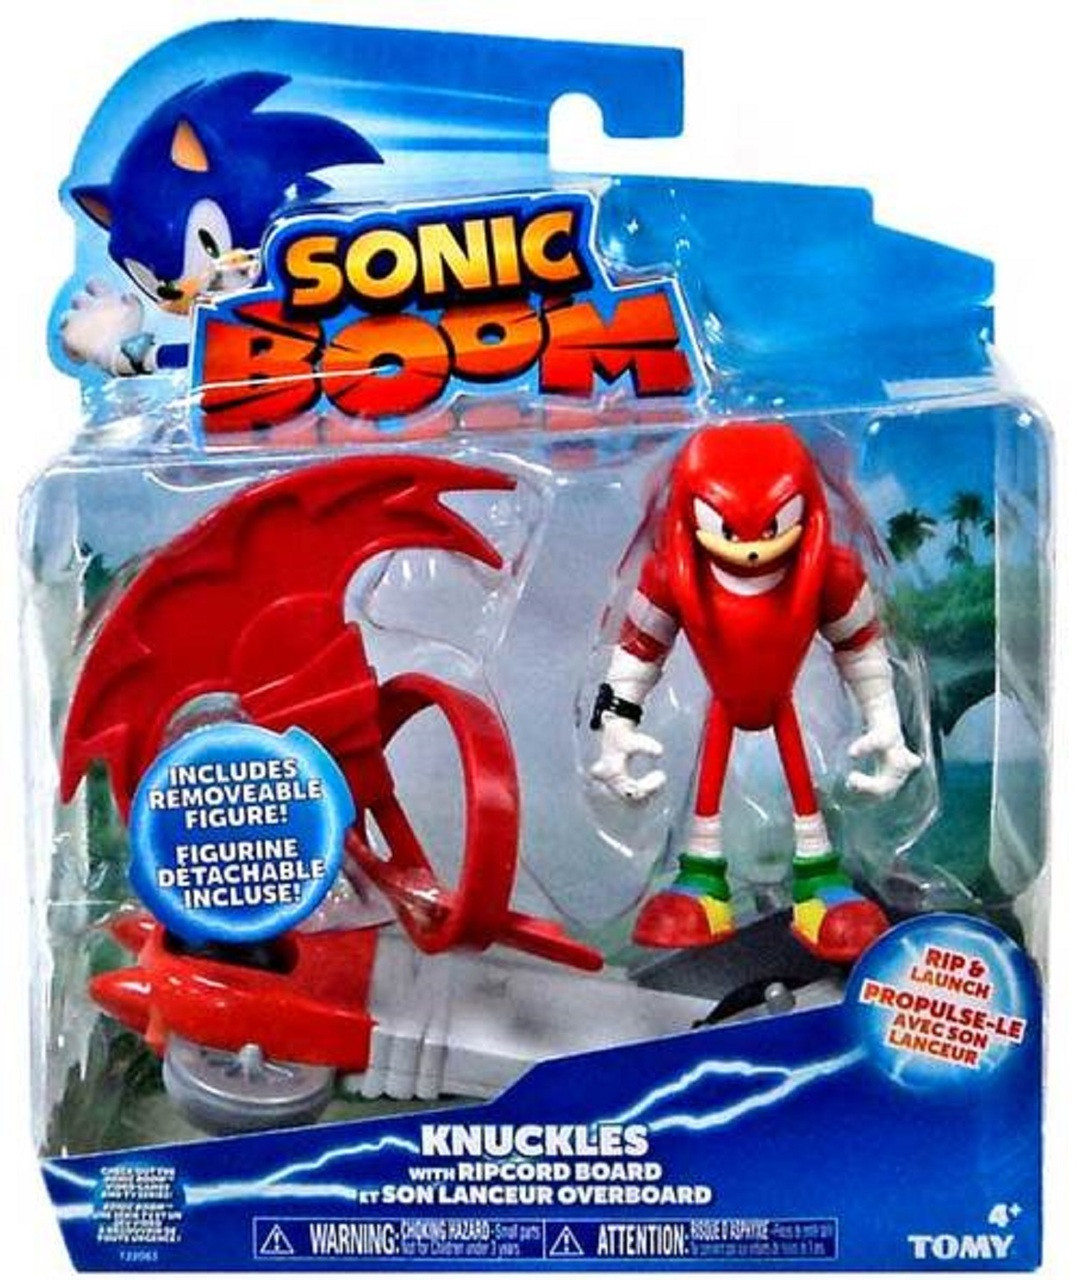 Sonic Boom 3 Inch Figure - Knuckles With Ripcord Board